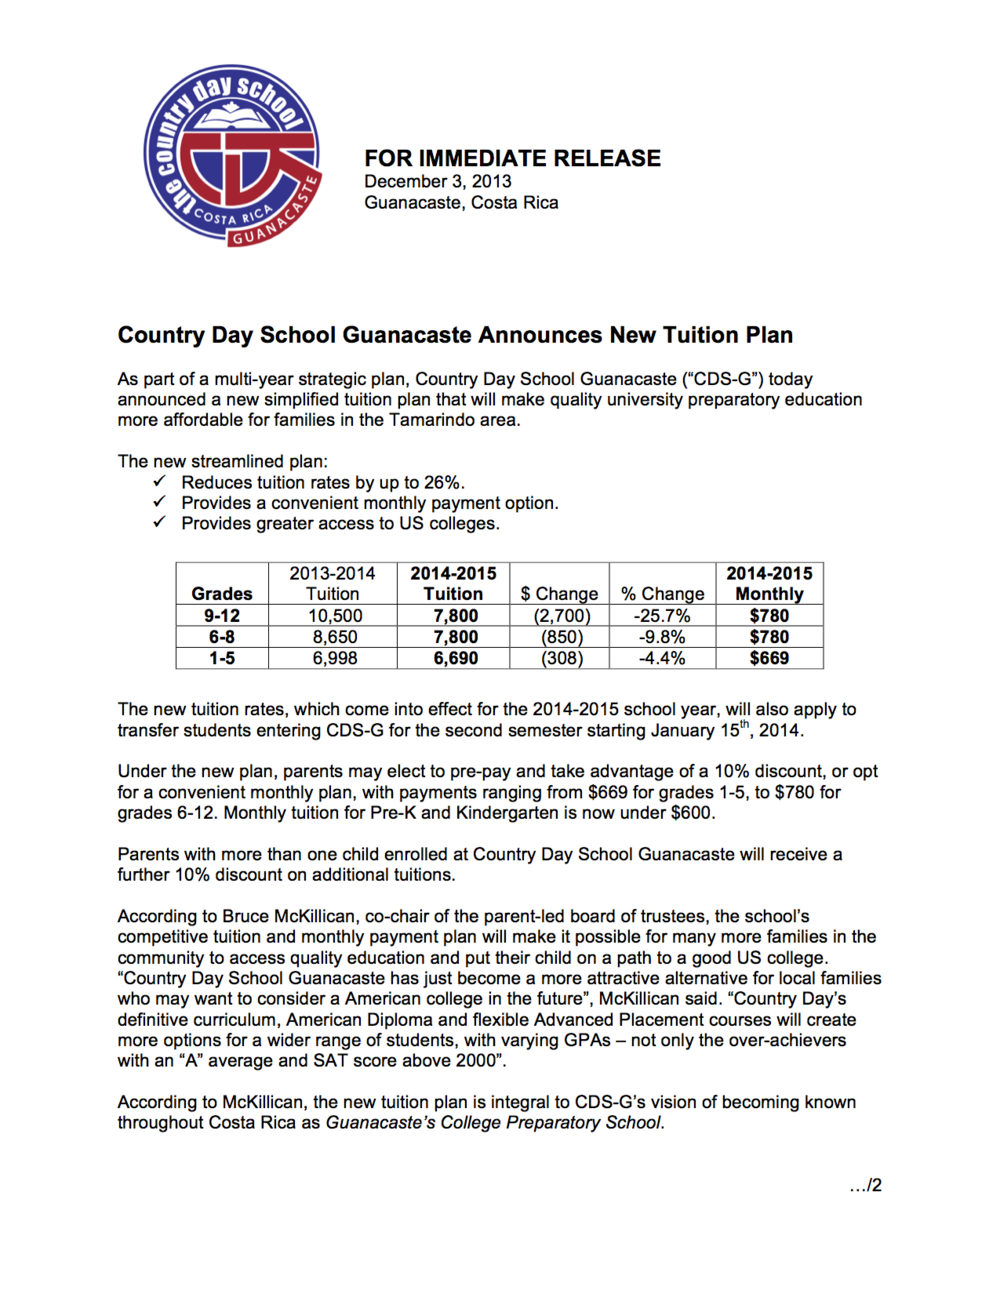 CDSGPressRelease041213.png